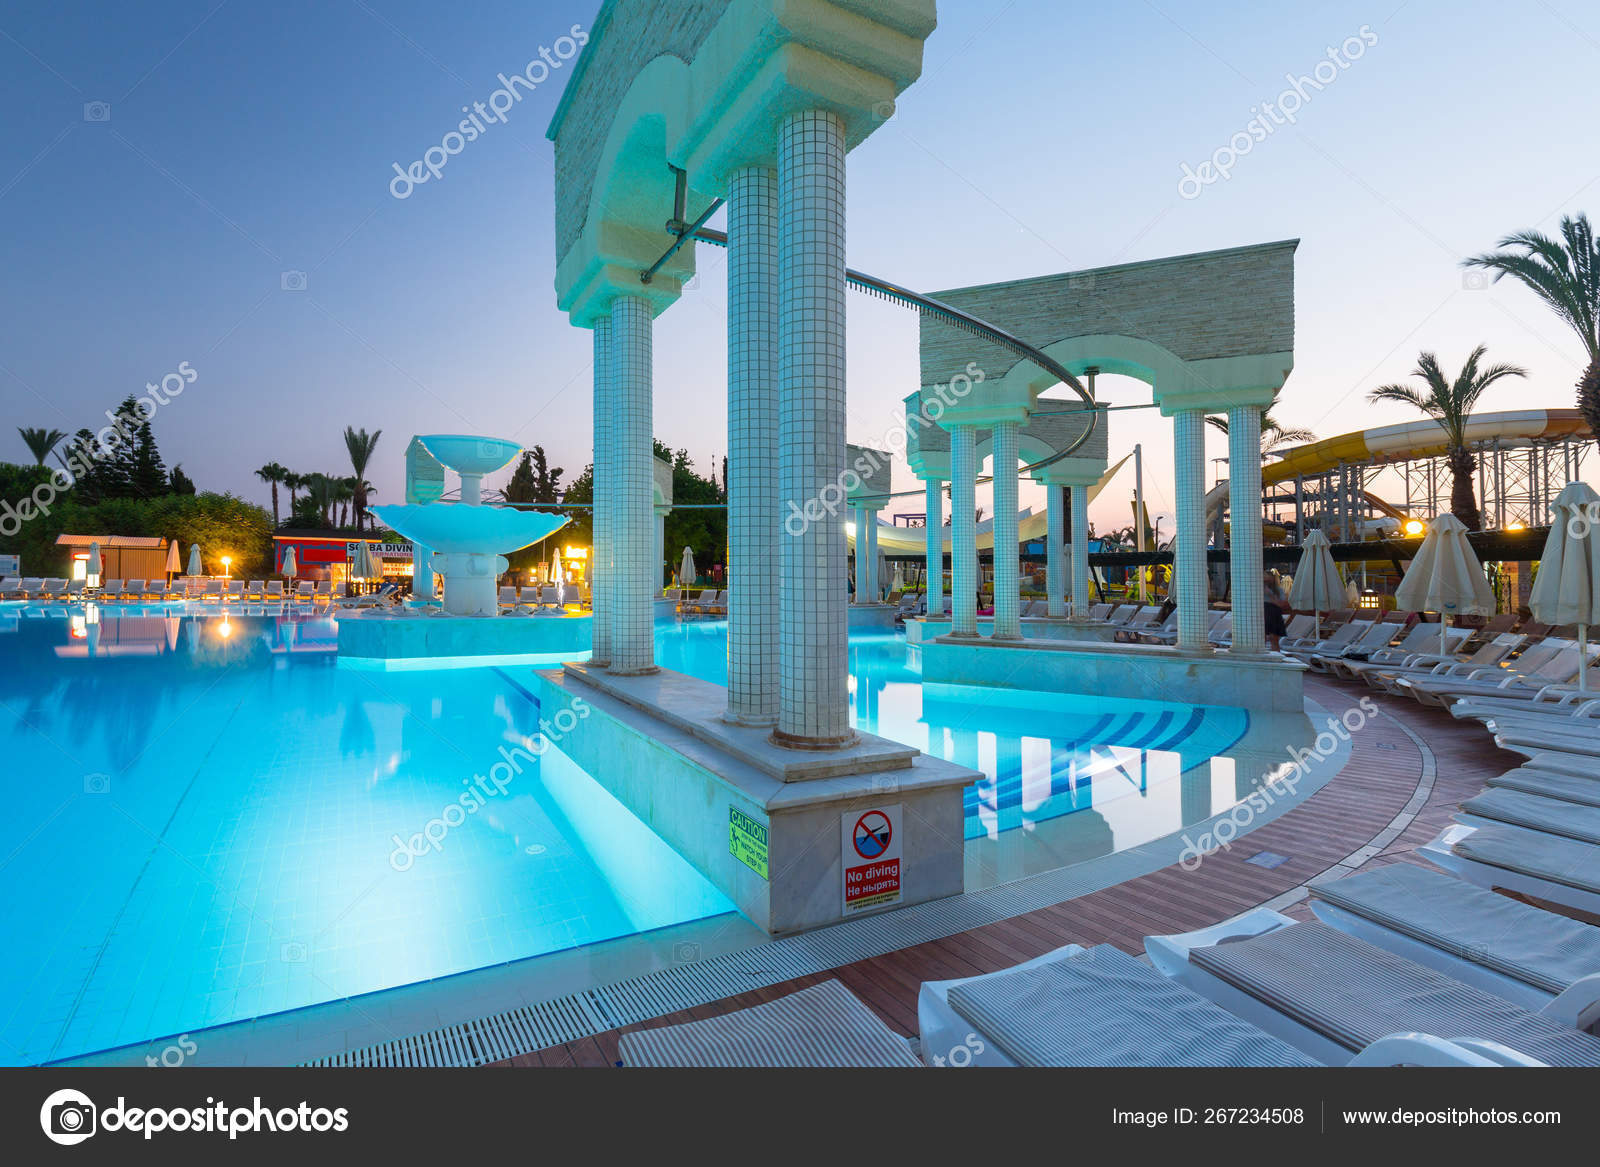 Side Turkey June 2018 Beautiful Pool Area Pegasos World Resort Stock Editorial Photo C Patryk Kosmider 267234508